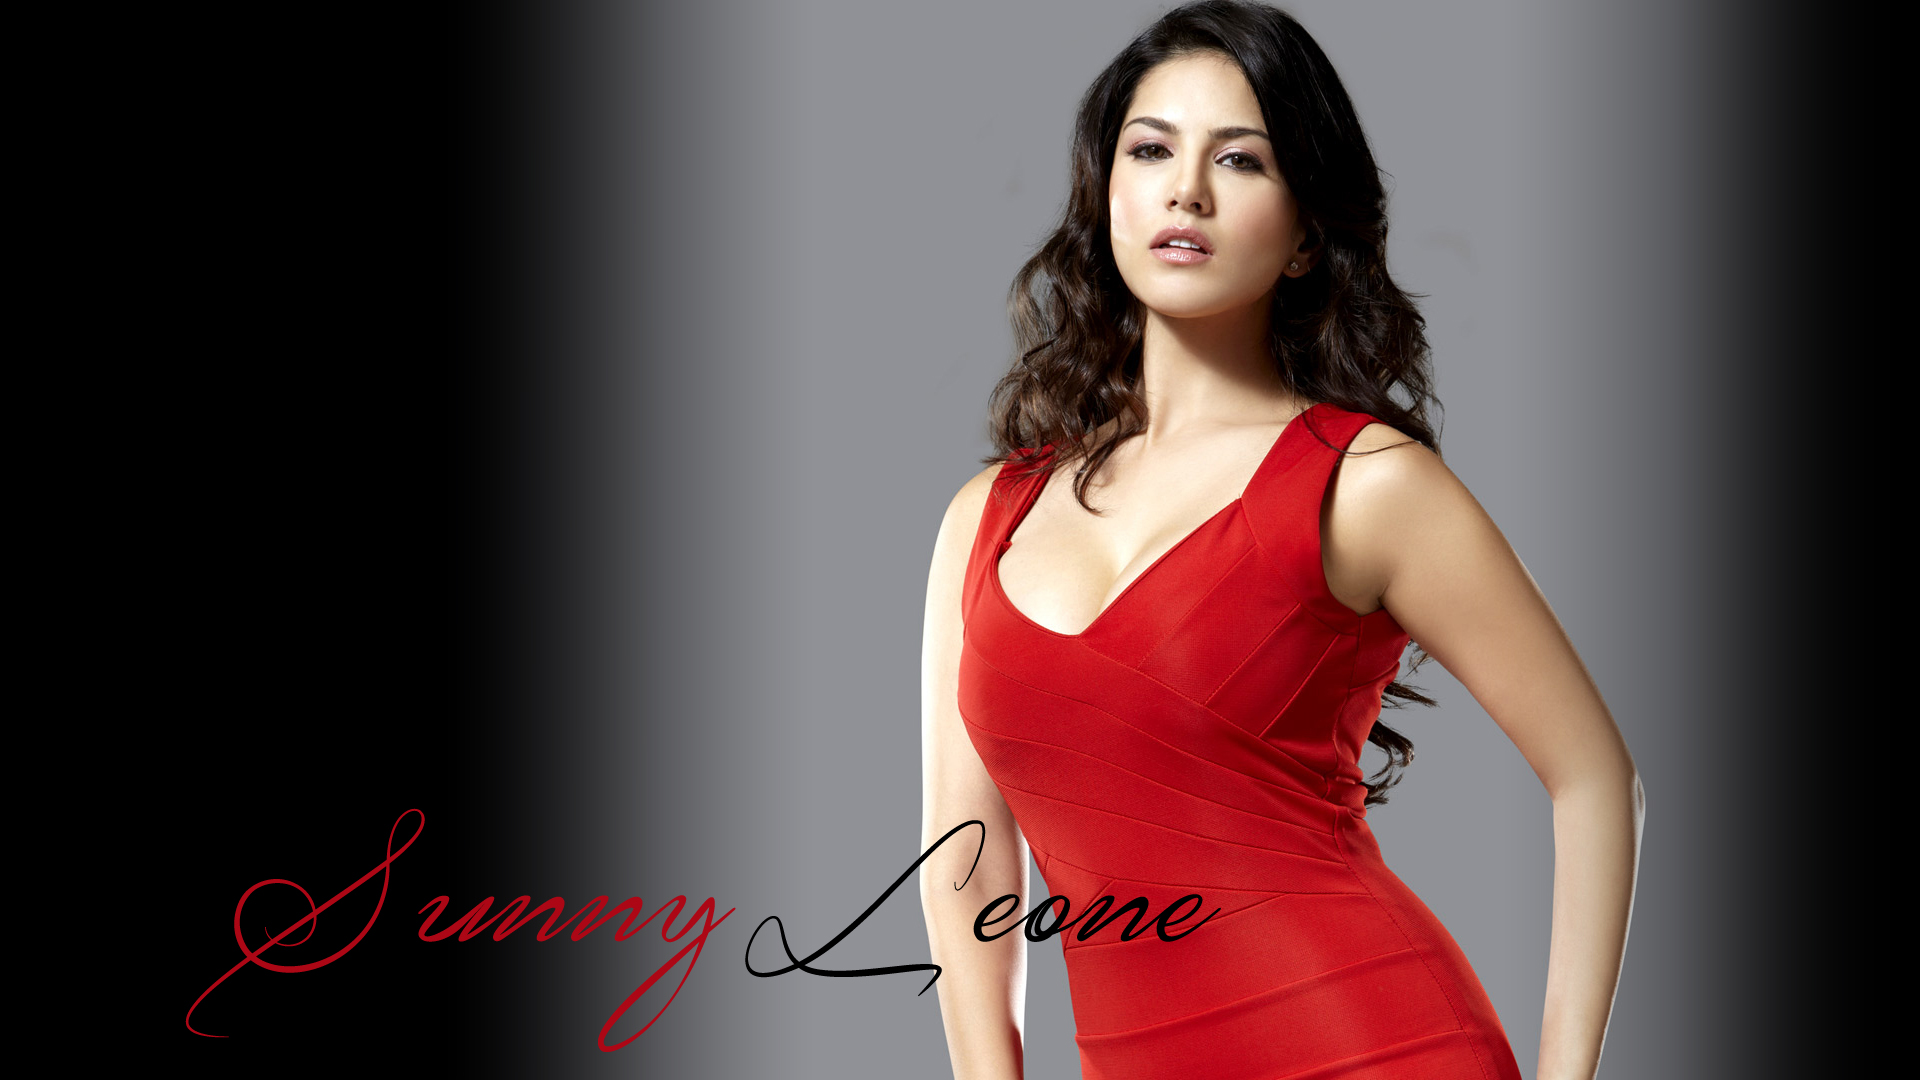 Sunny Leone Full HD Wallpapers Group (62+)